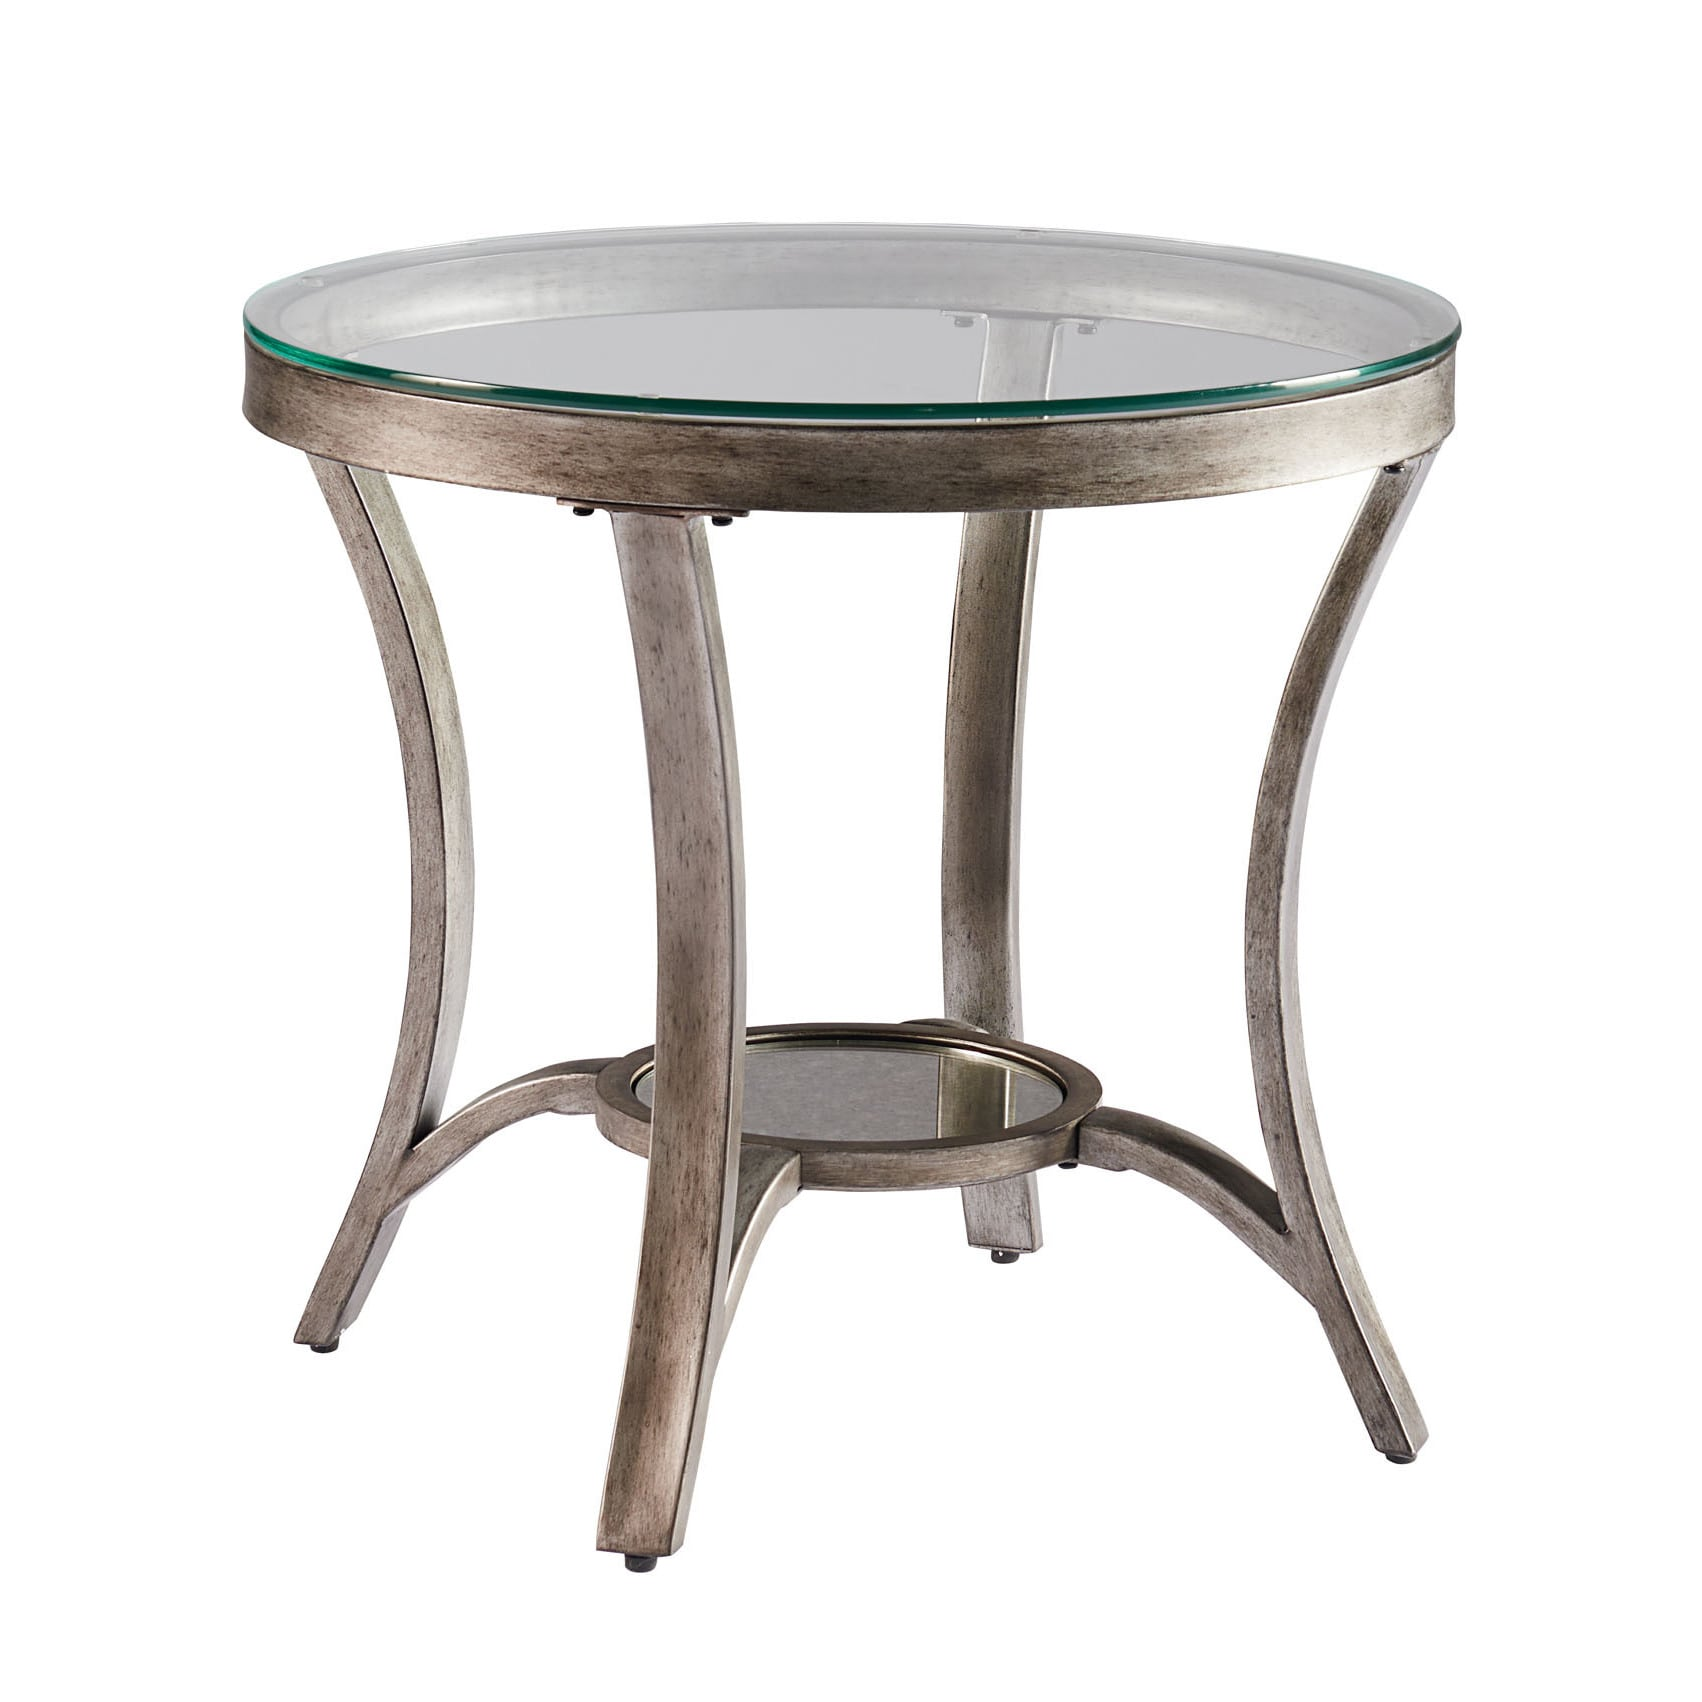 cole grey metal round end table with glass top tables tablecloth pulaski furniture hall chest what color rug brown leather sofa sleek modern galvanized pipe base patio side